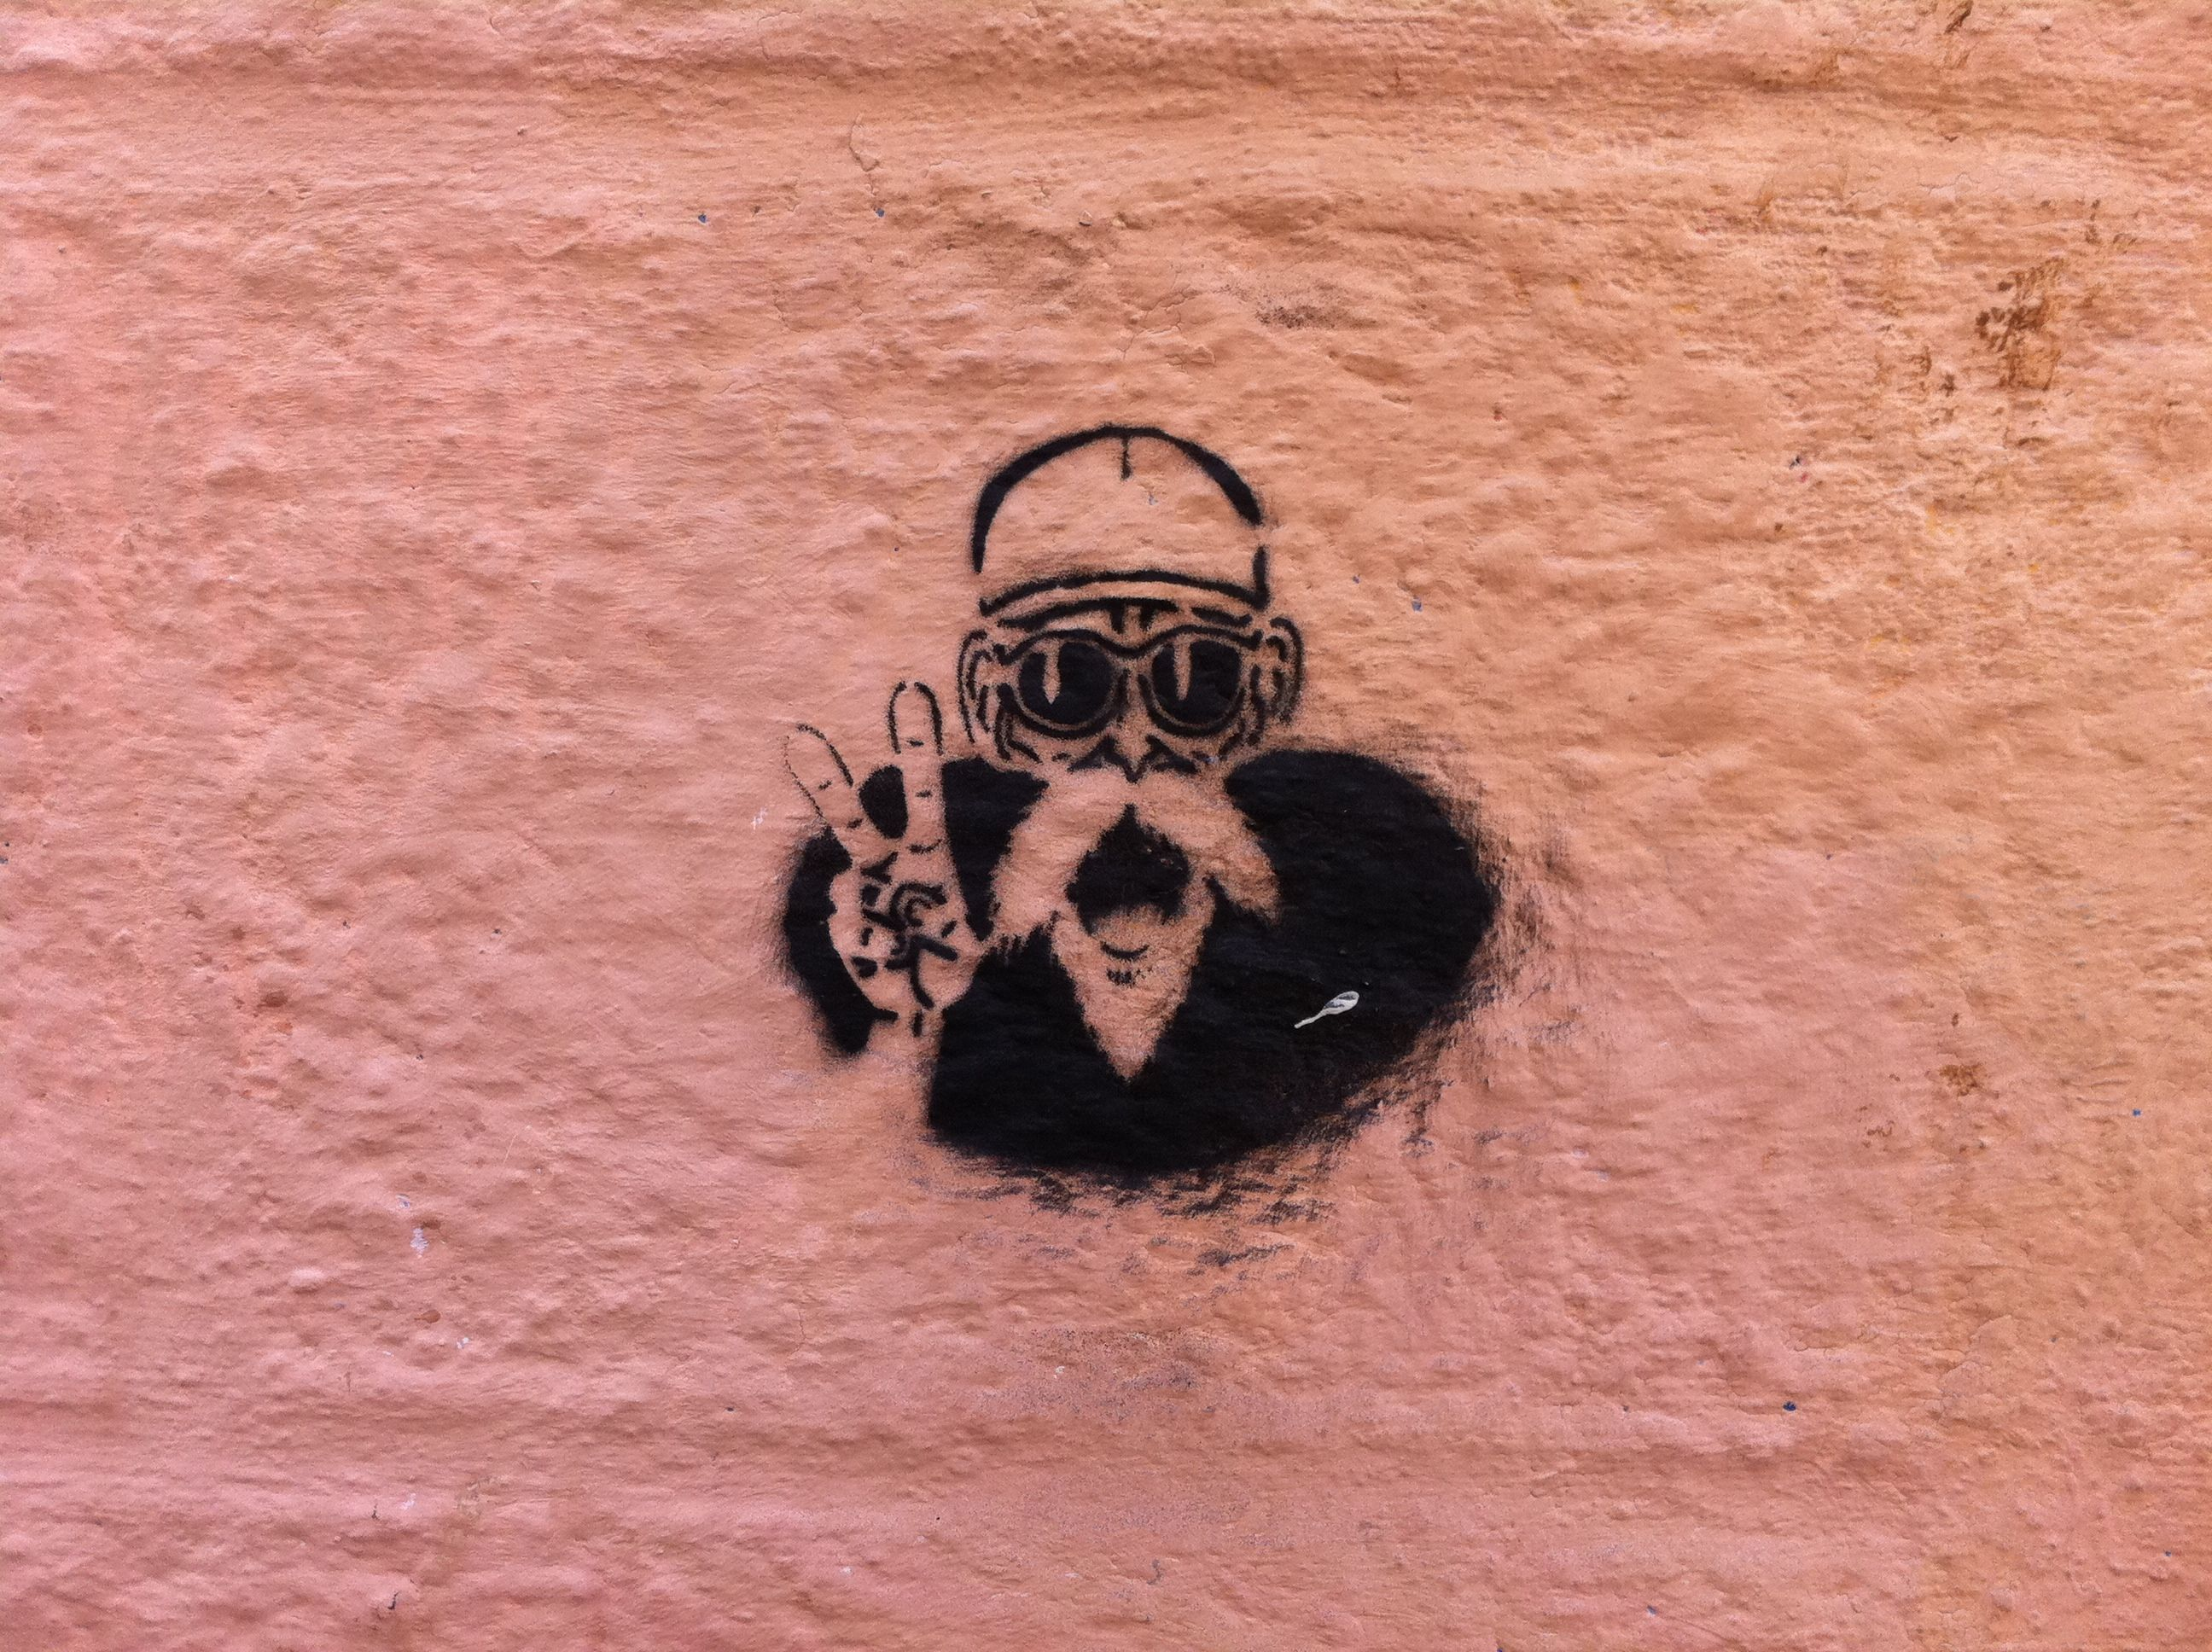 Some Street Art From Mallorca (Palma)